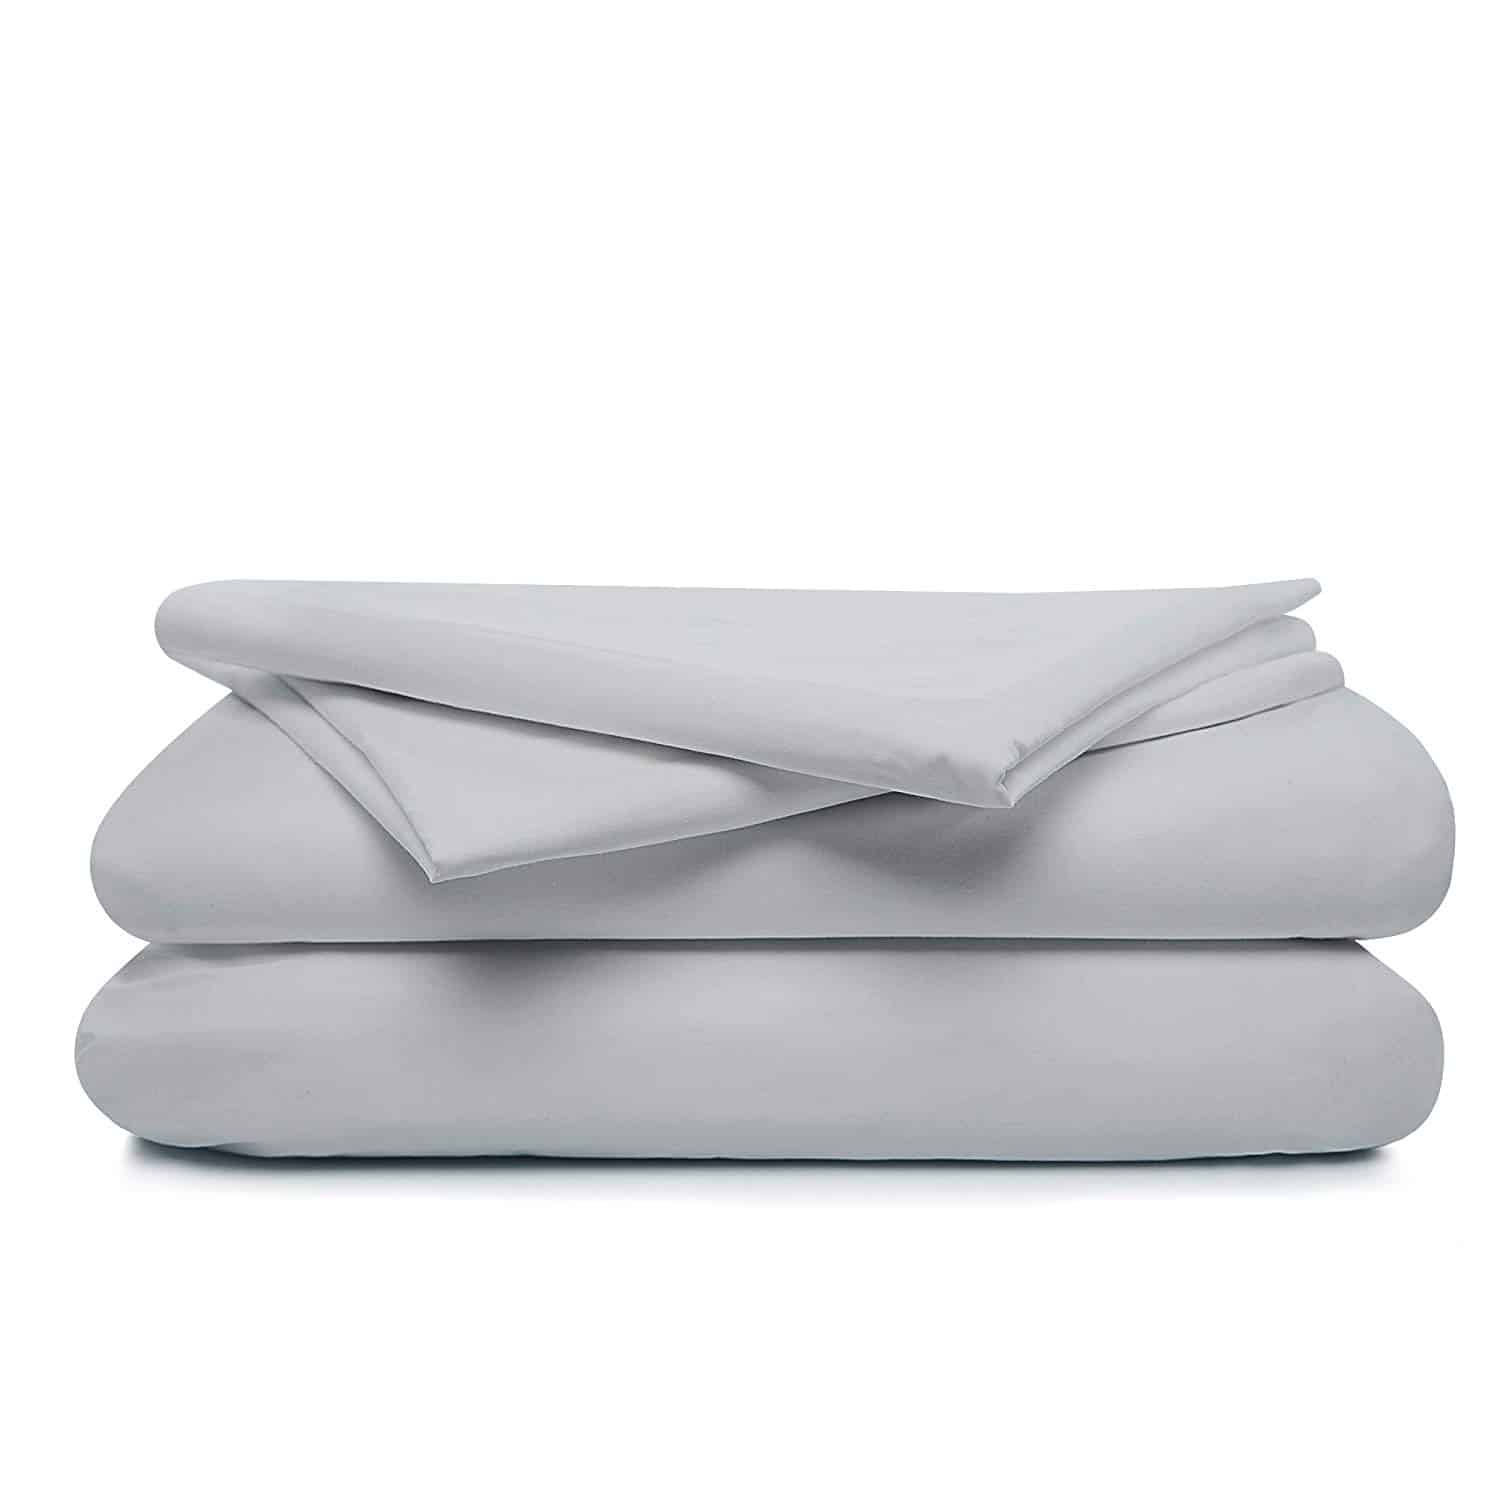 Save up to 20% on Cotton Sheets and Curtains - Amazon